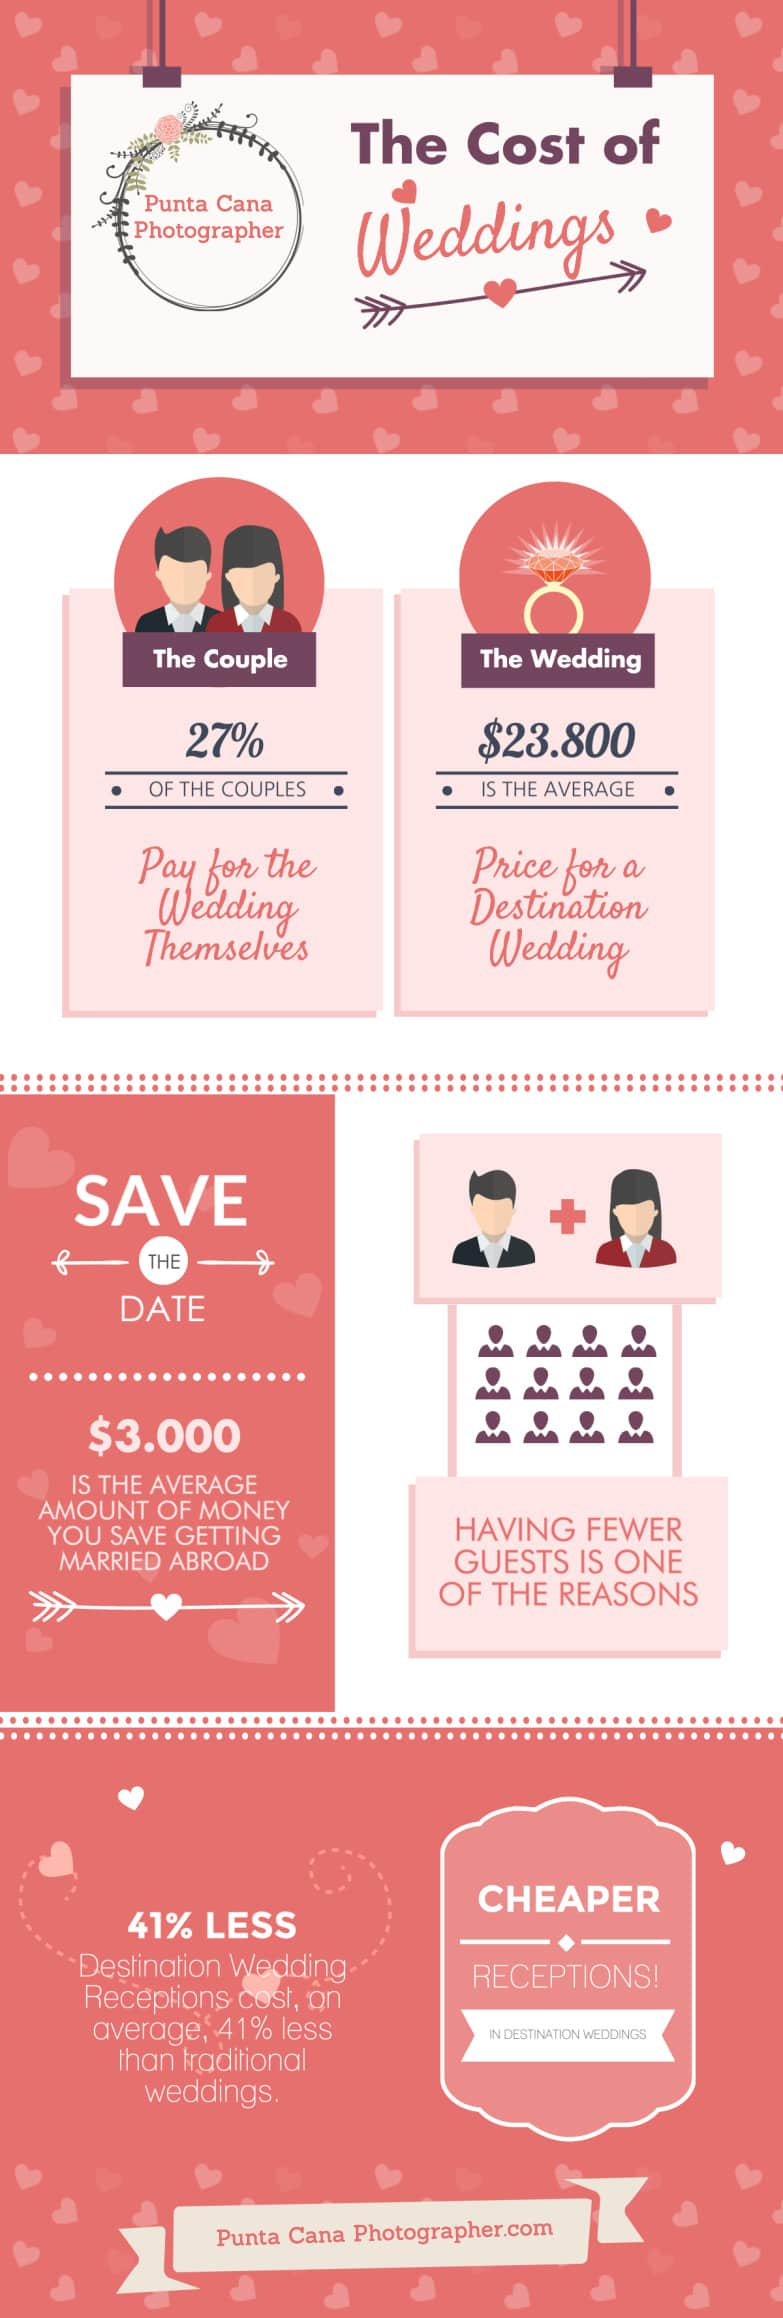 Destination Wedding Cost by Punta Cana Photographer